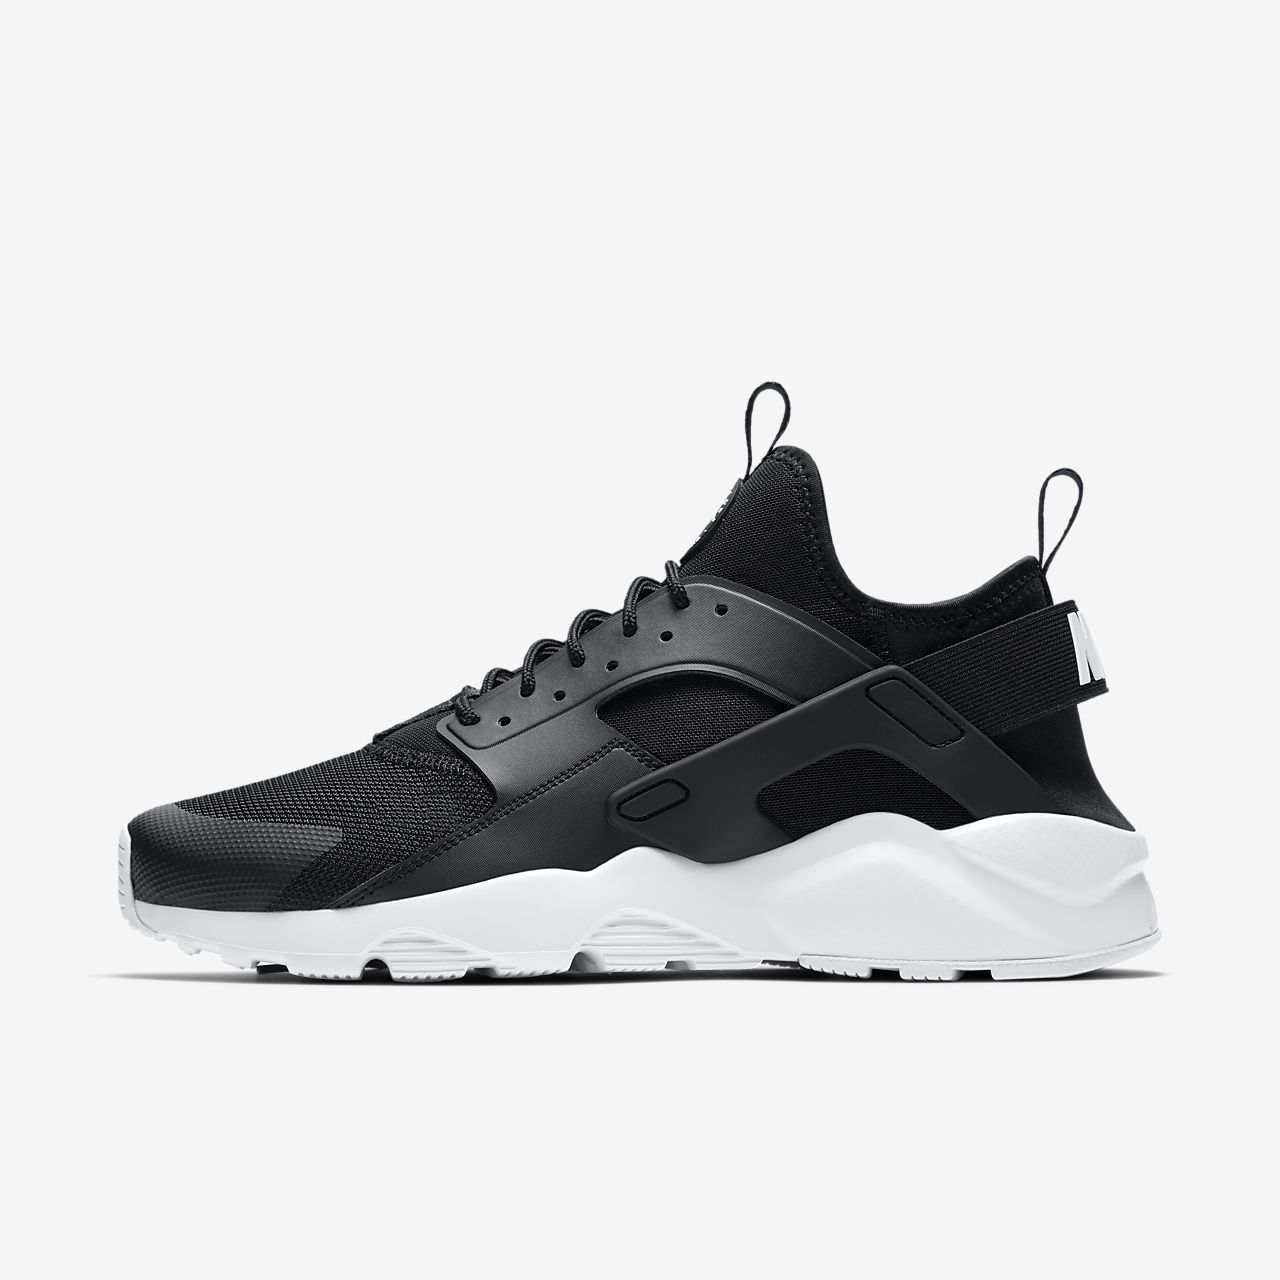 hot sale online 373f9 55173 ... Nike Air Huarache Ultra Men s Shoe